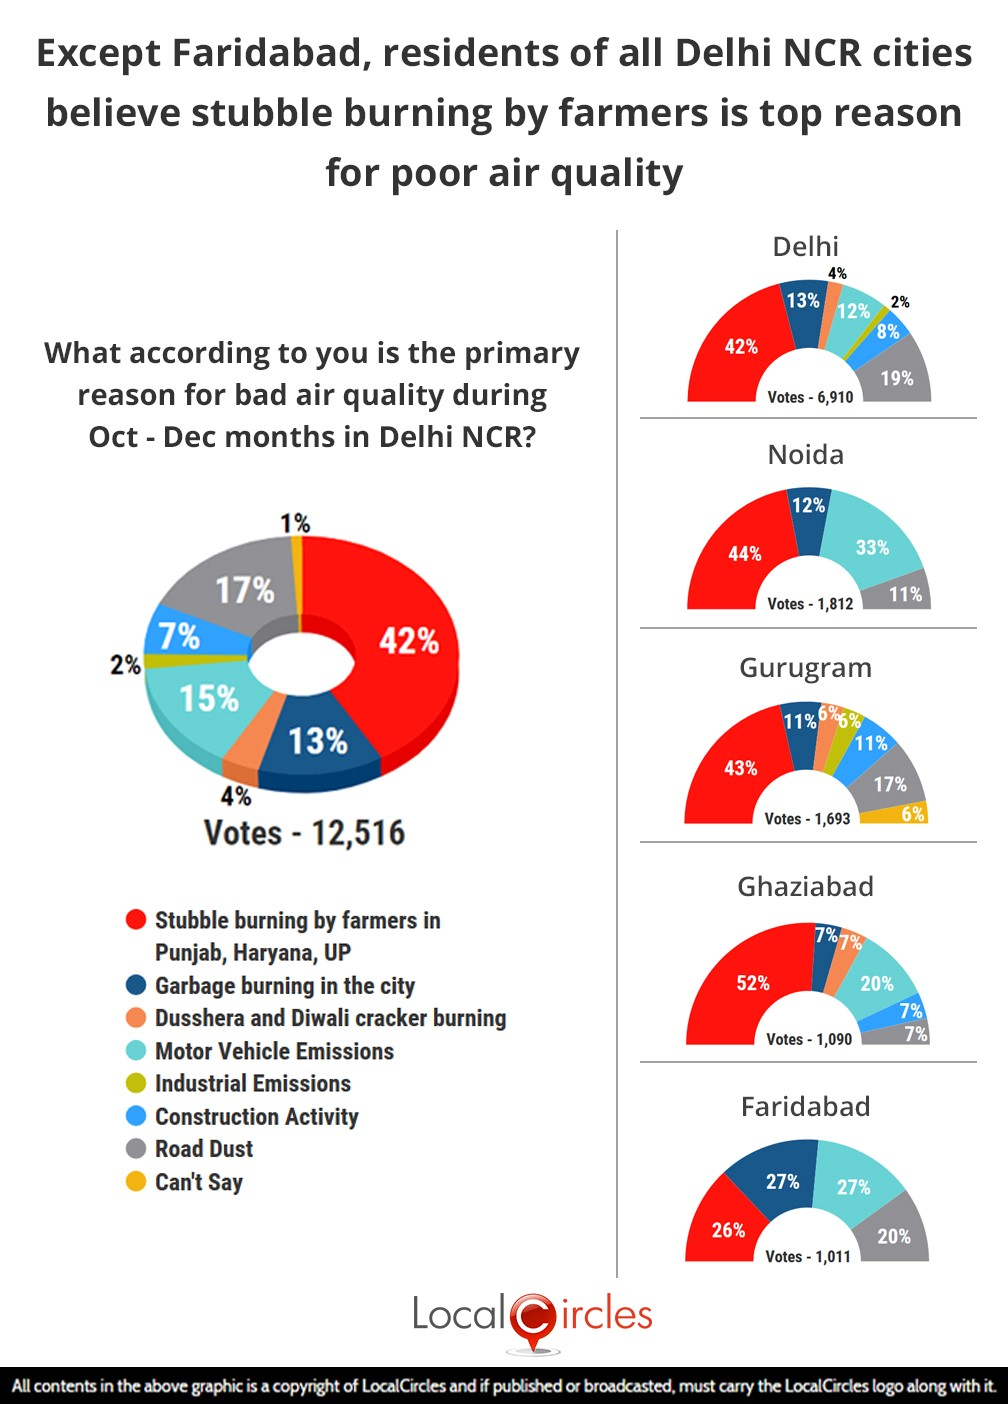 LocalCircles Poll - Except Faridabad, residents of all Delhi NCR cities believe stubble burning by farmers is top reason for poor air quality